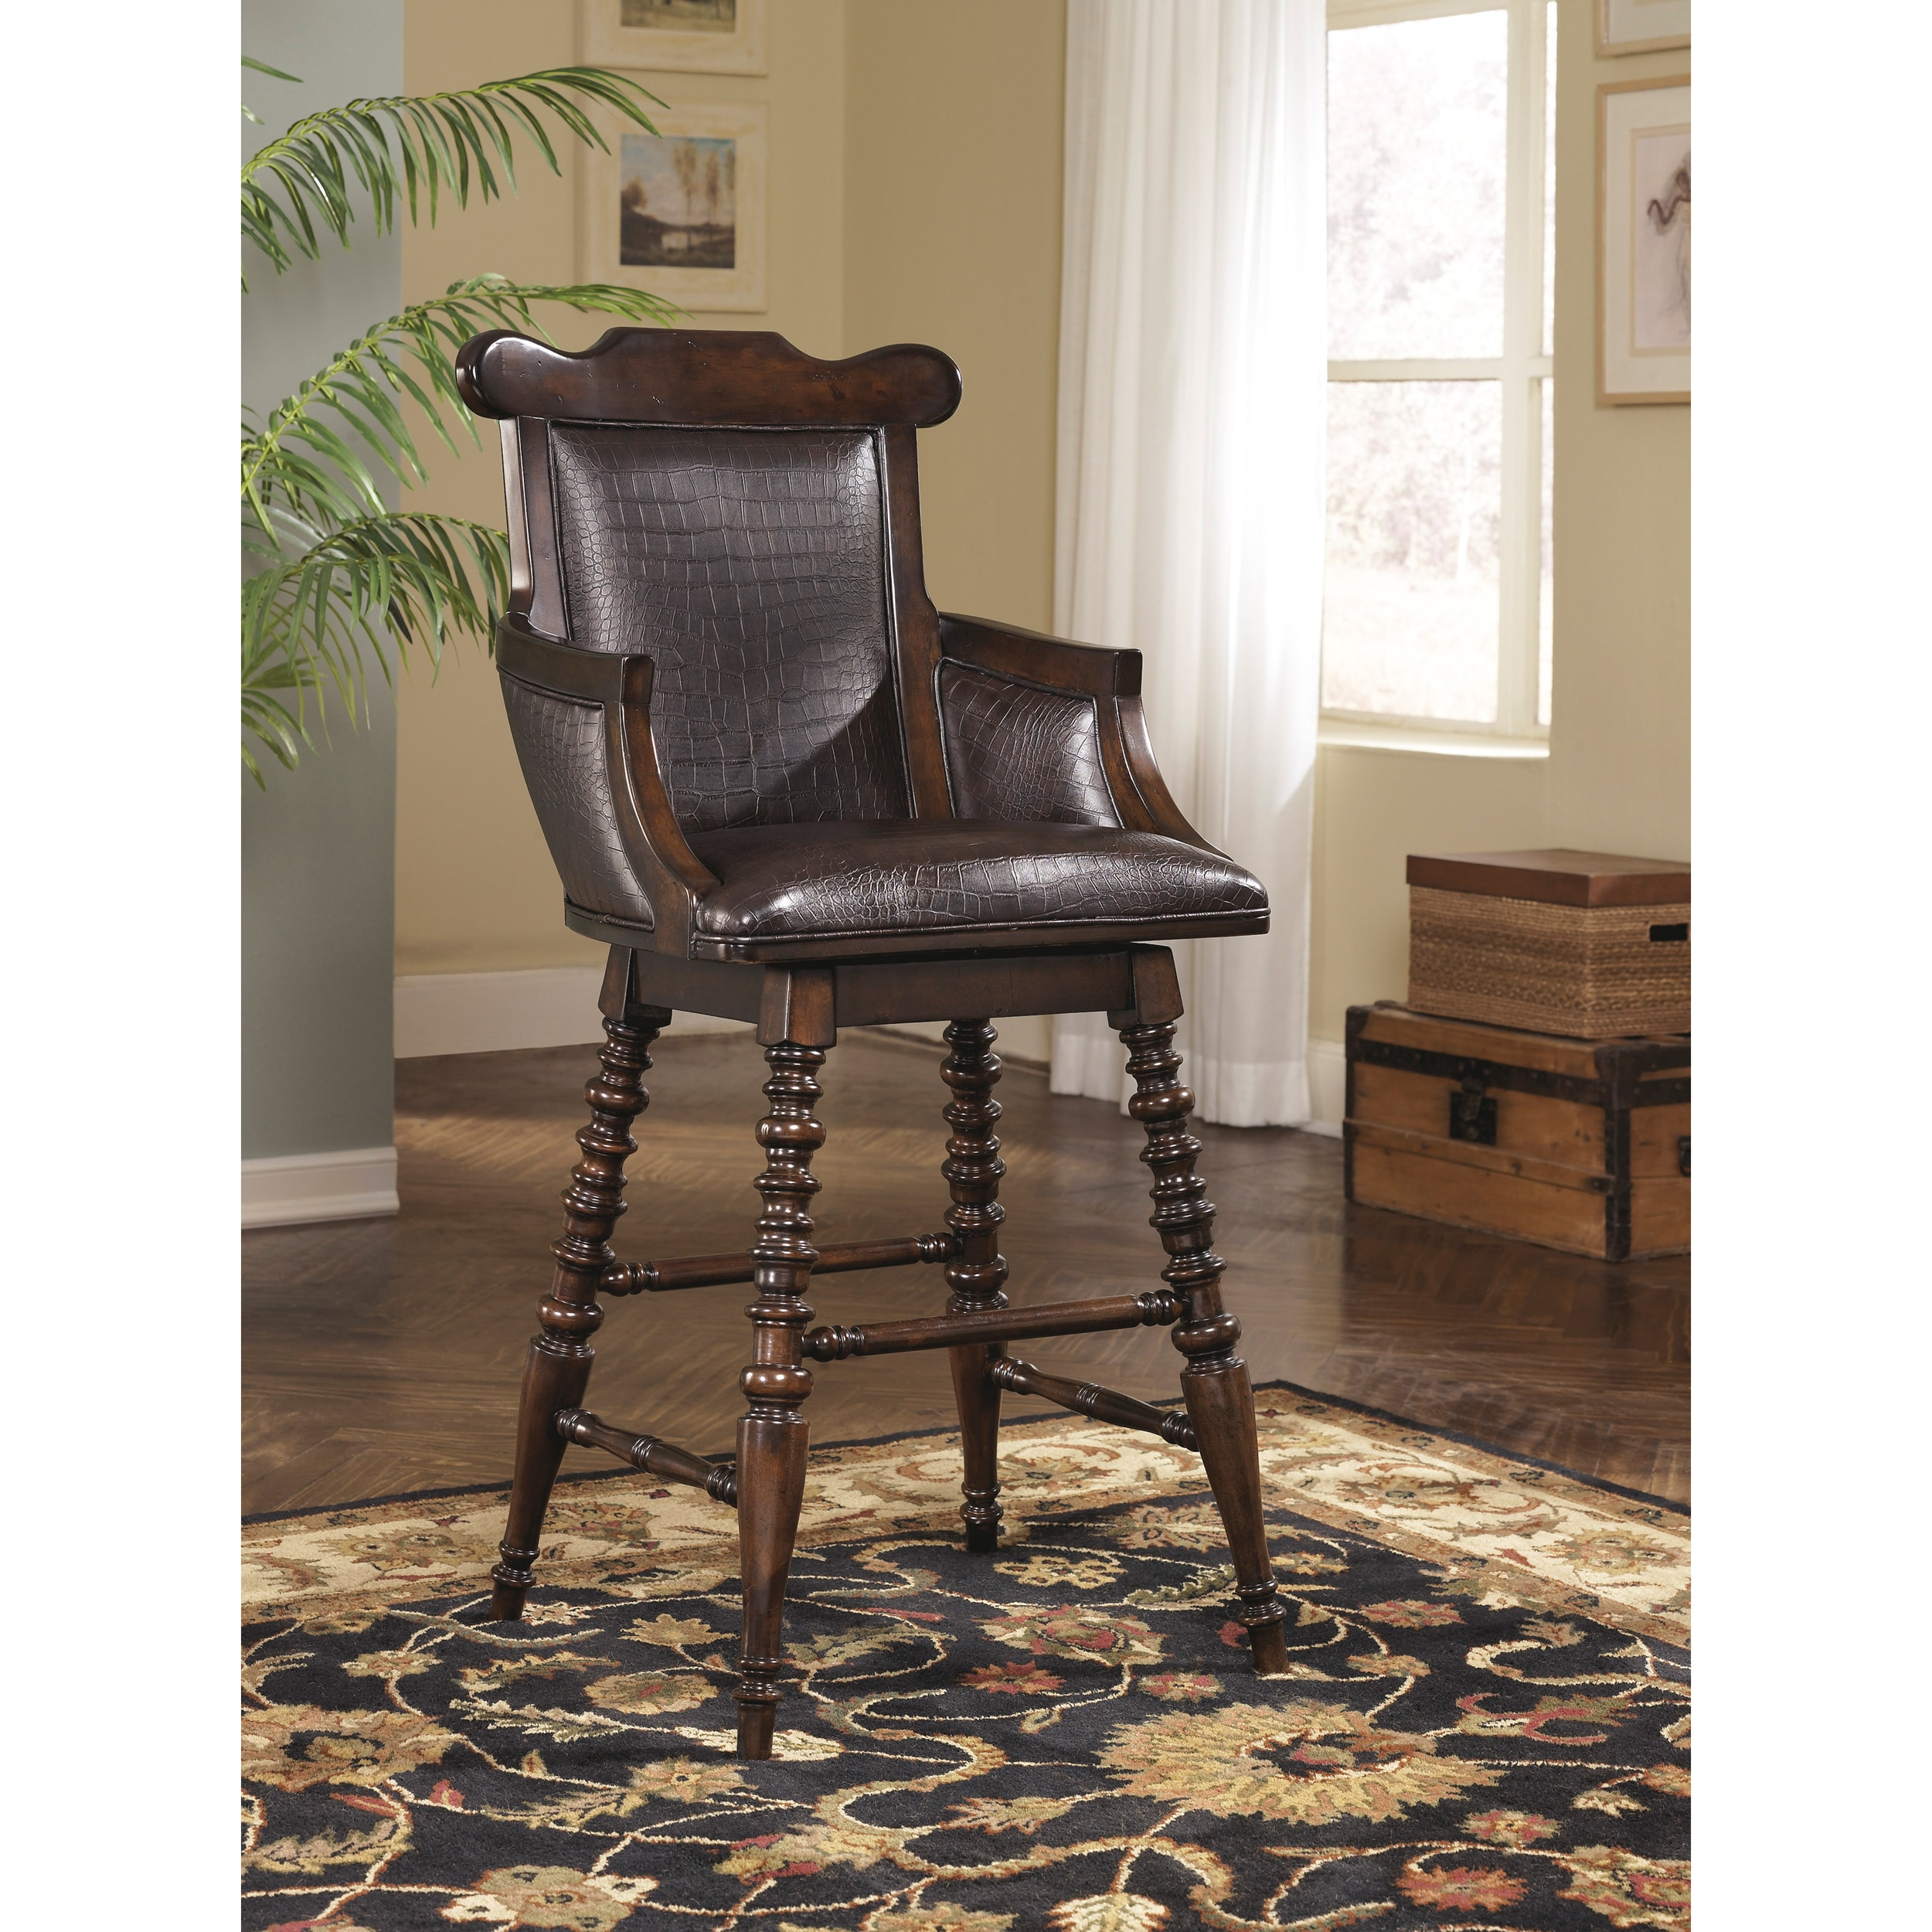 Signature Design by Ashley Key Town Dark Brown Tall Upholstered Swivel Barstool